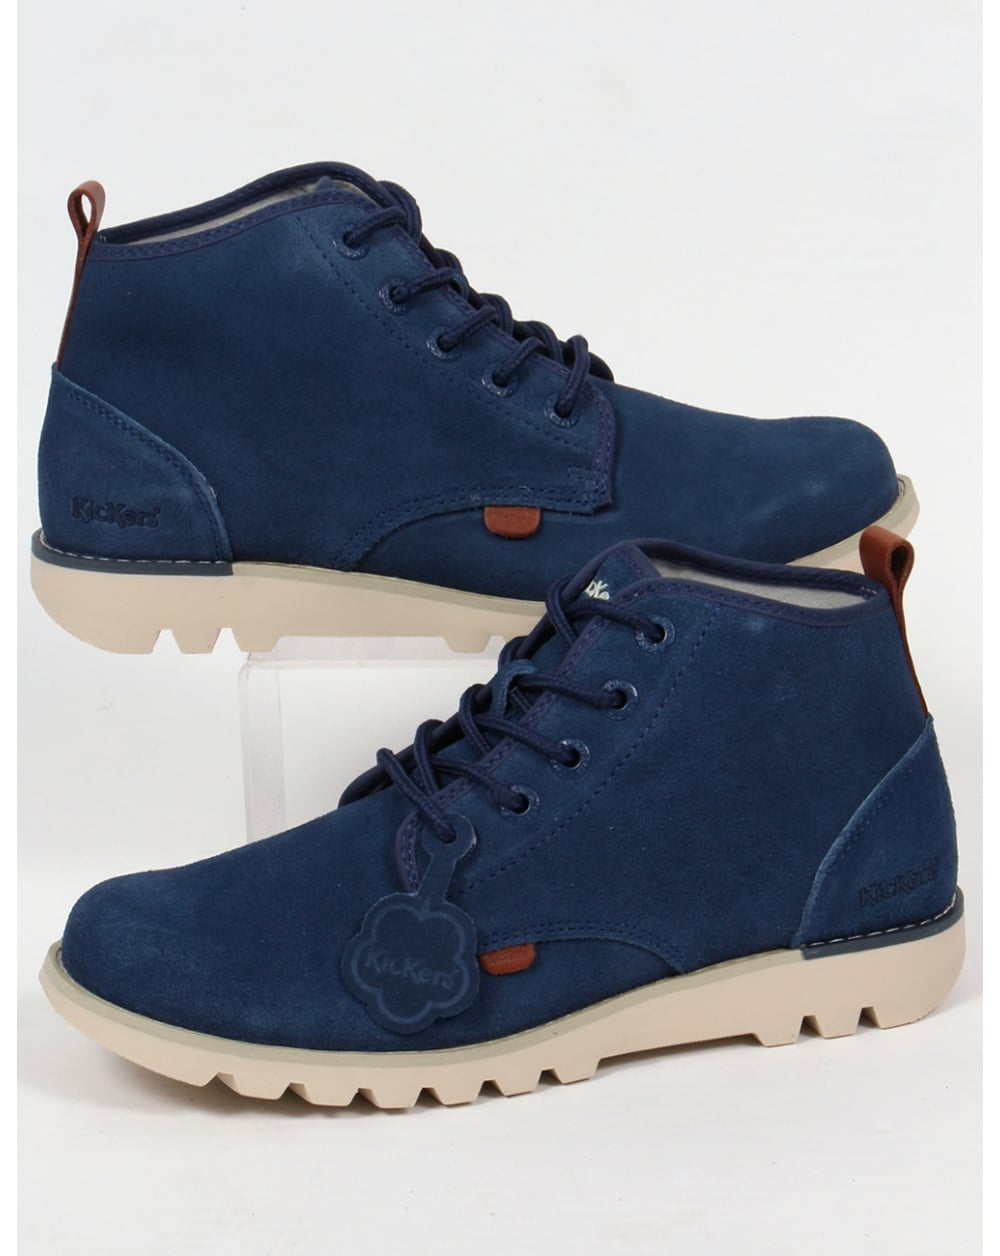 b800b1c685b7 Kickers Kick Hisuma Suede Boots Blue - Footwear from 80s Casual ...